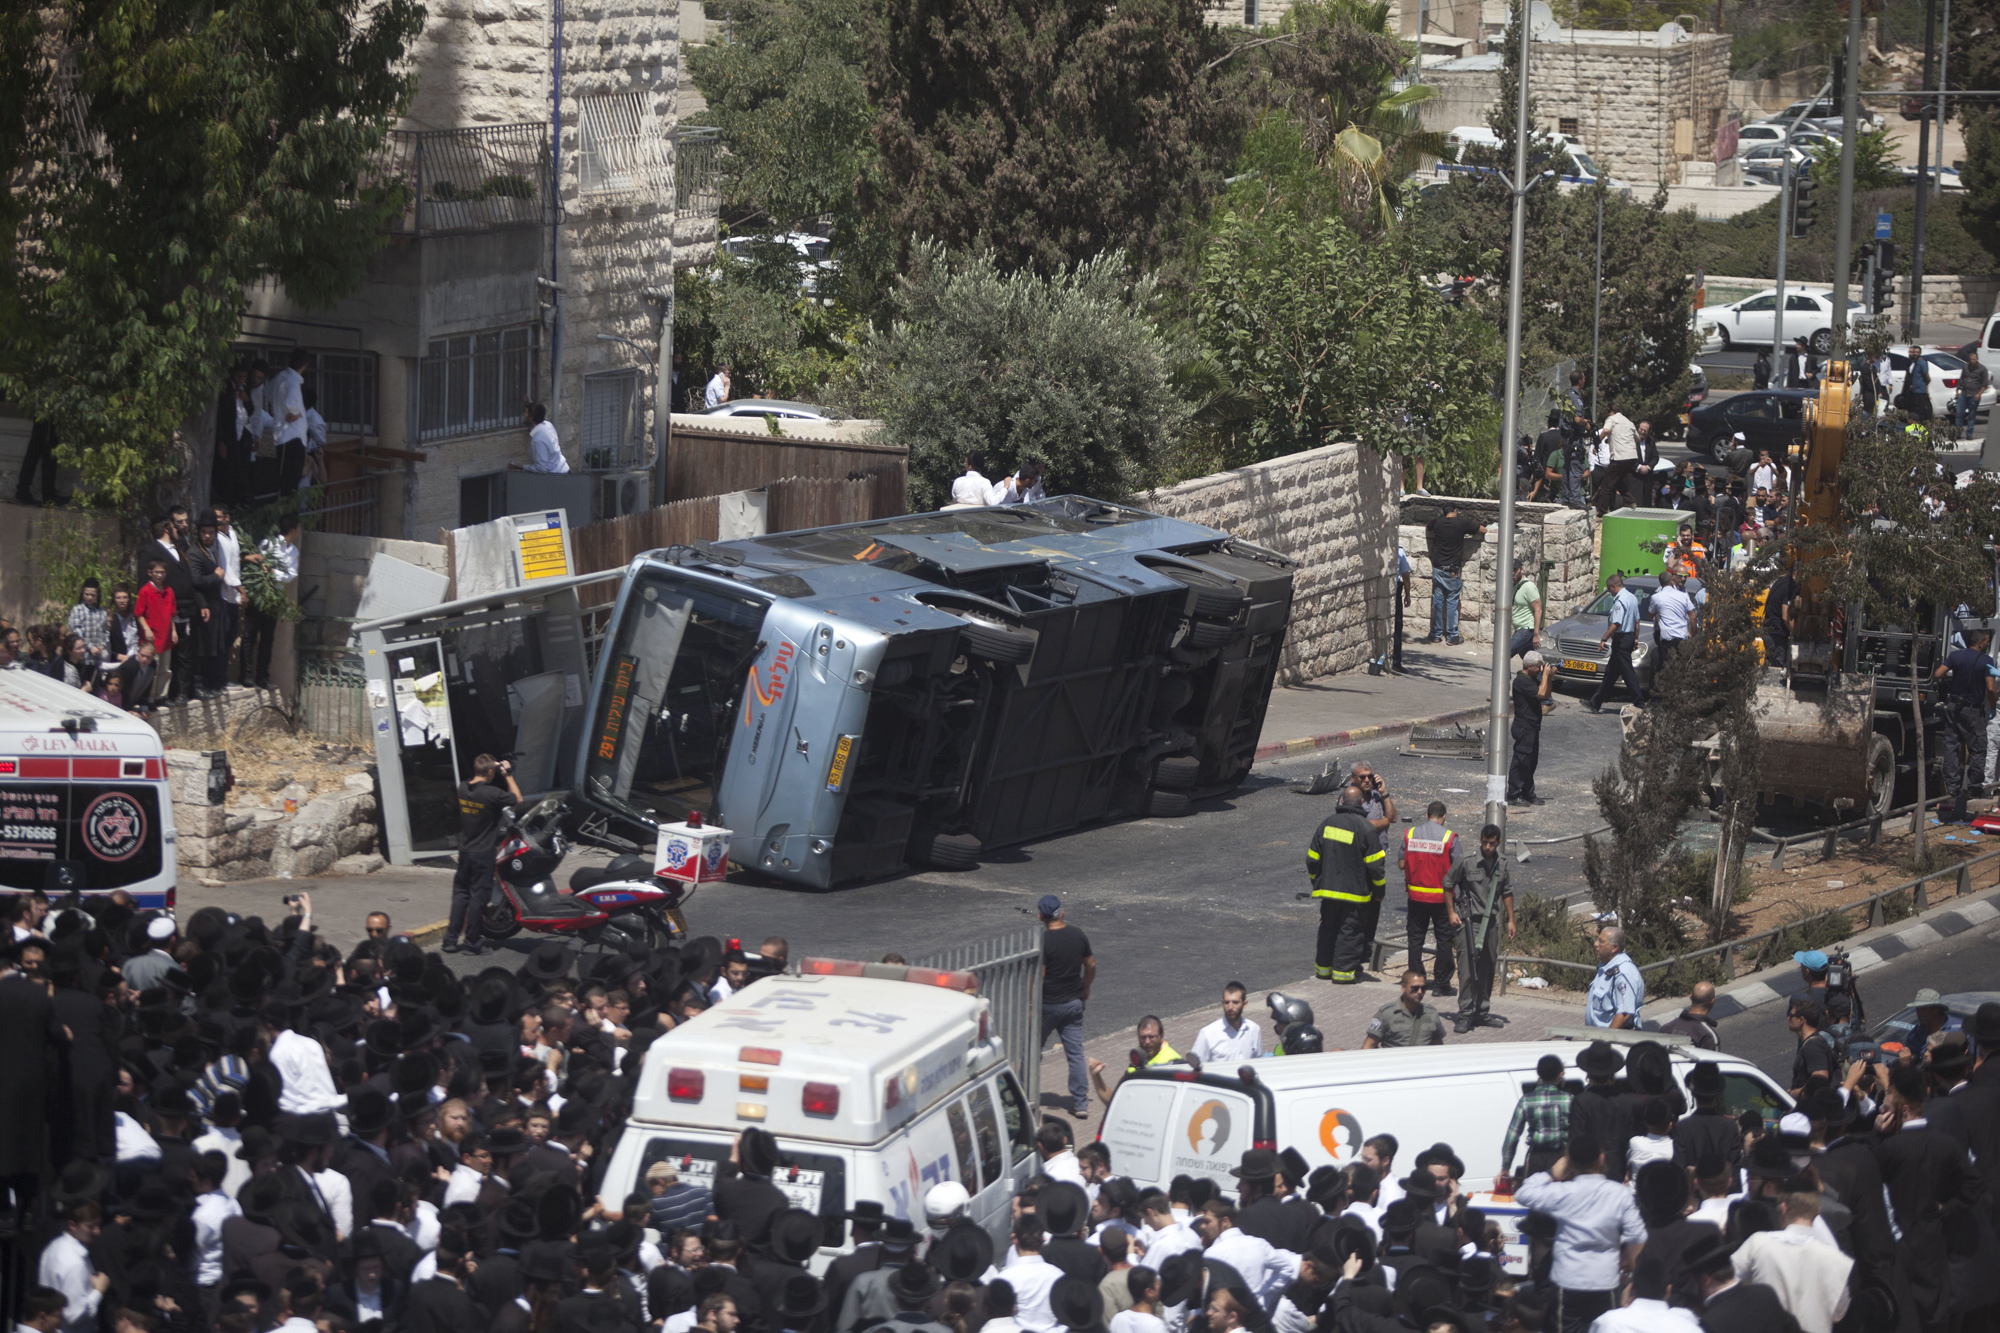 A bus after a Palestinian man in an excavator rammed into it on Aug. 4. 2014 in Jerusalem.